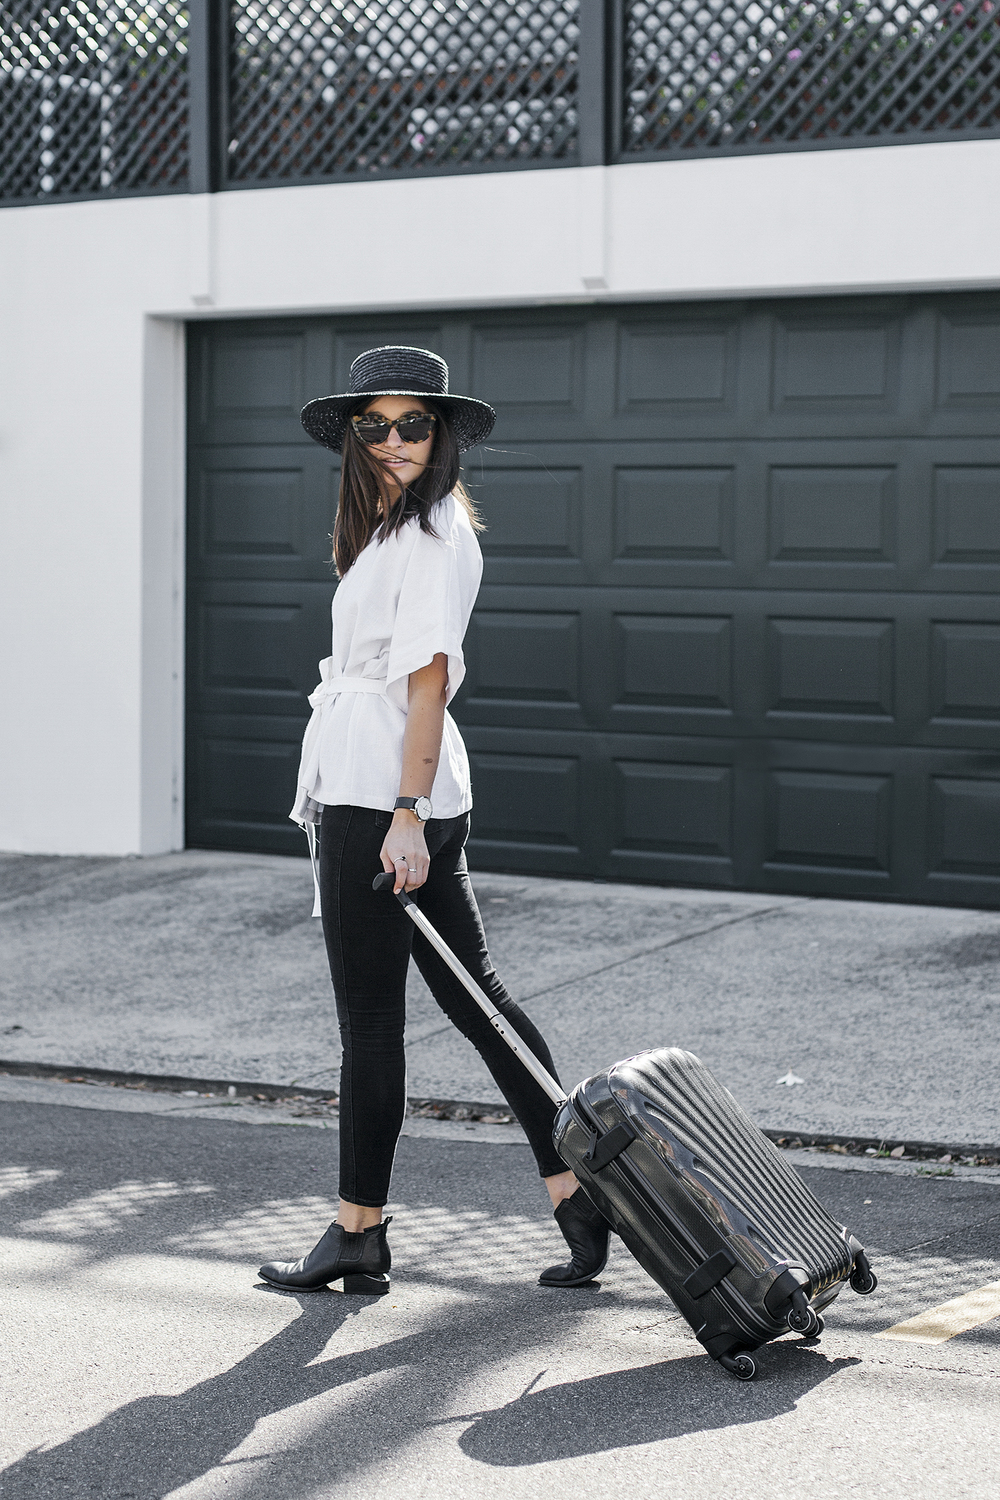 An Organised Life_Vogue_Long Weekend Escape 2